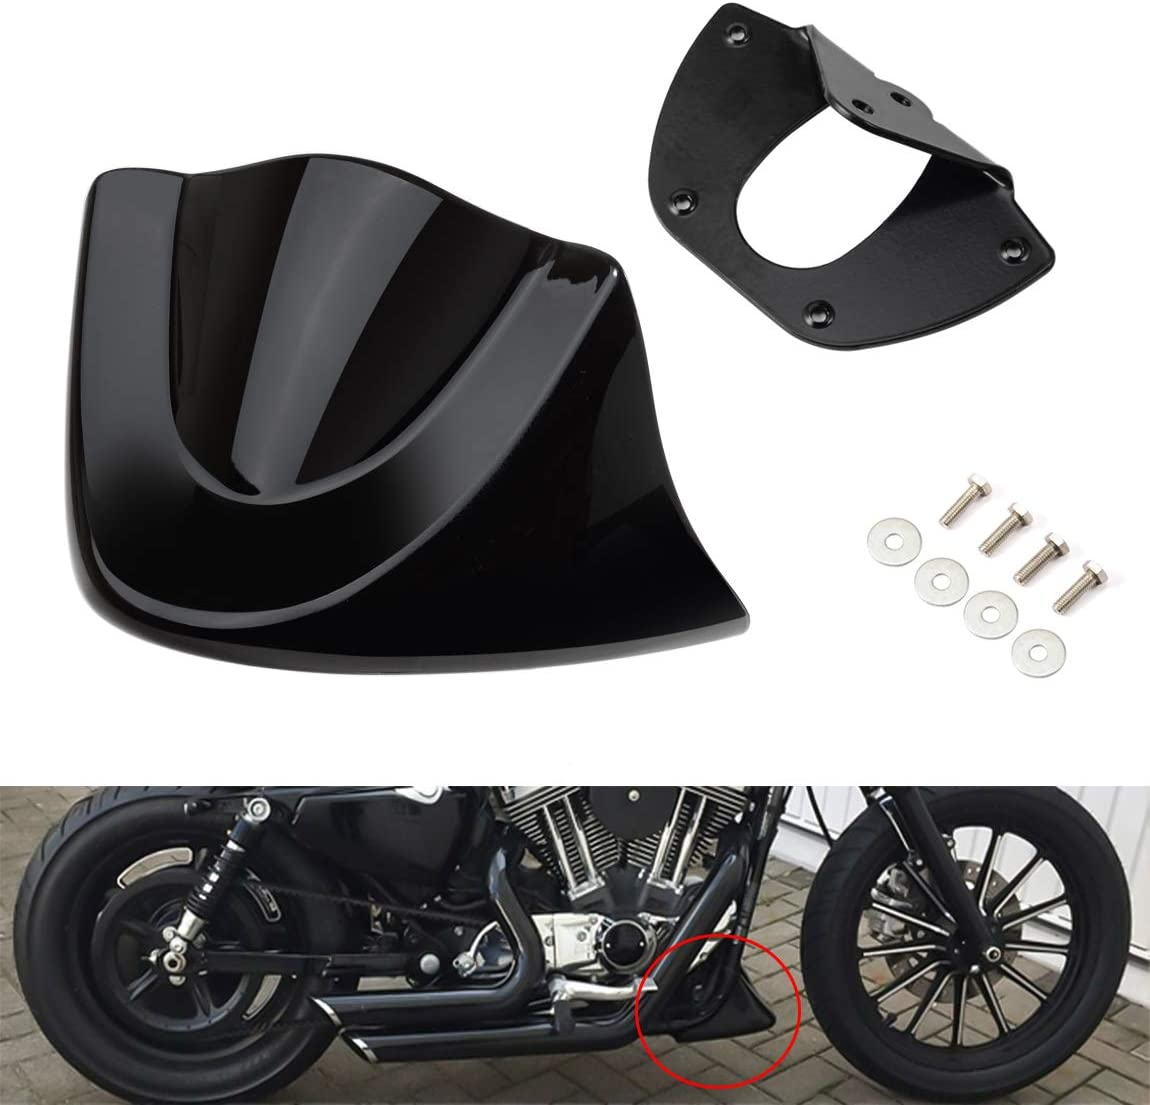 Gloss Black PBYMT Front Chin Spoiler Air Dam Fairing Windshield Mudguard Cover with Metal Bracket Compatible for Harley Davidson Dyna Fat Bob Street Bob Super Wide Glide 2006-2017